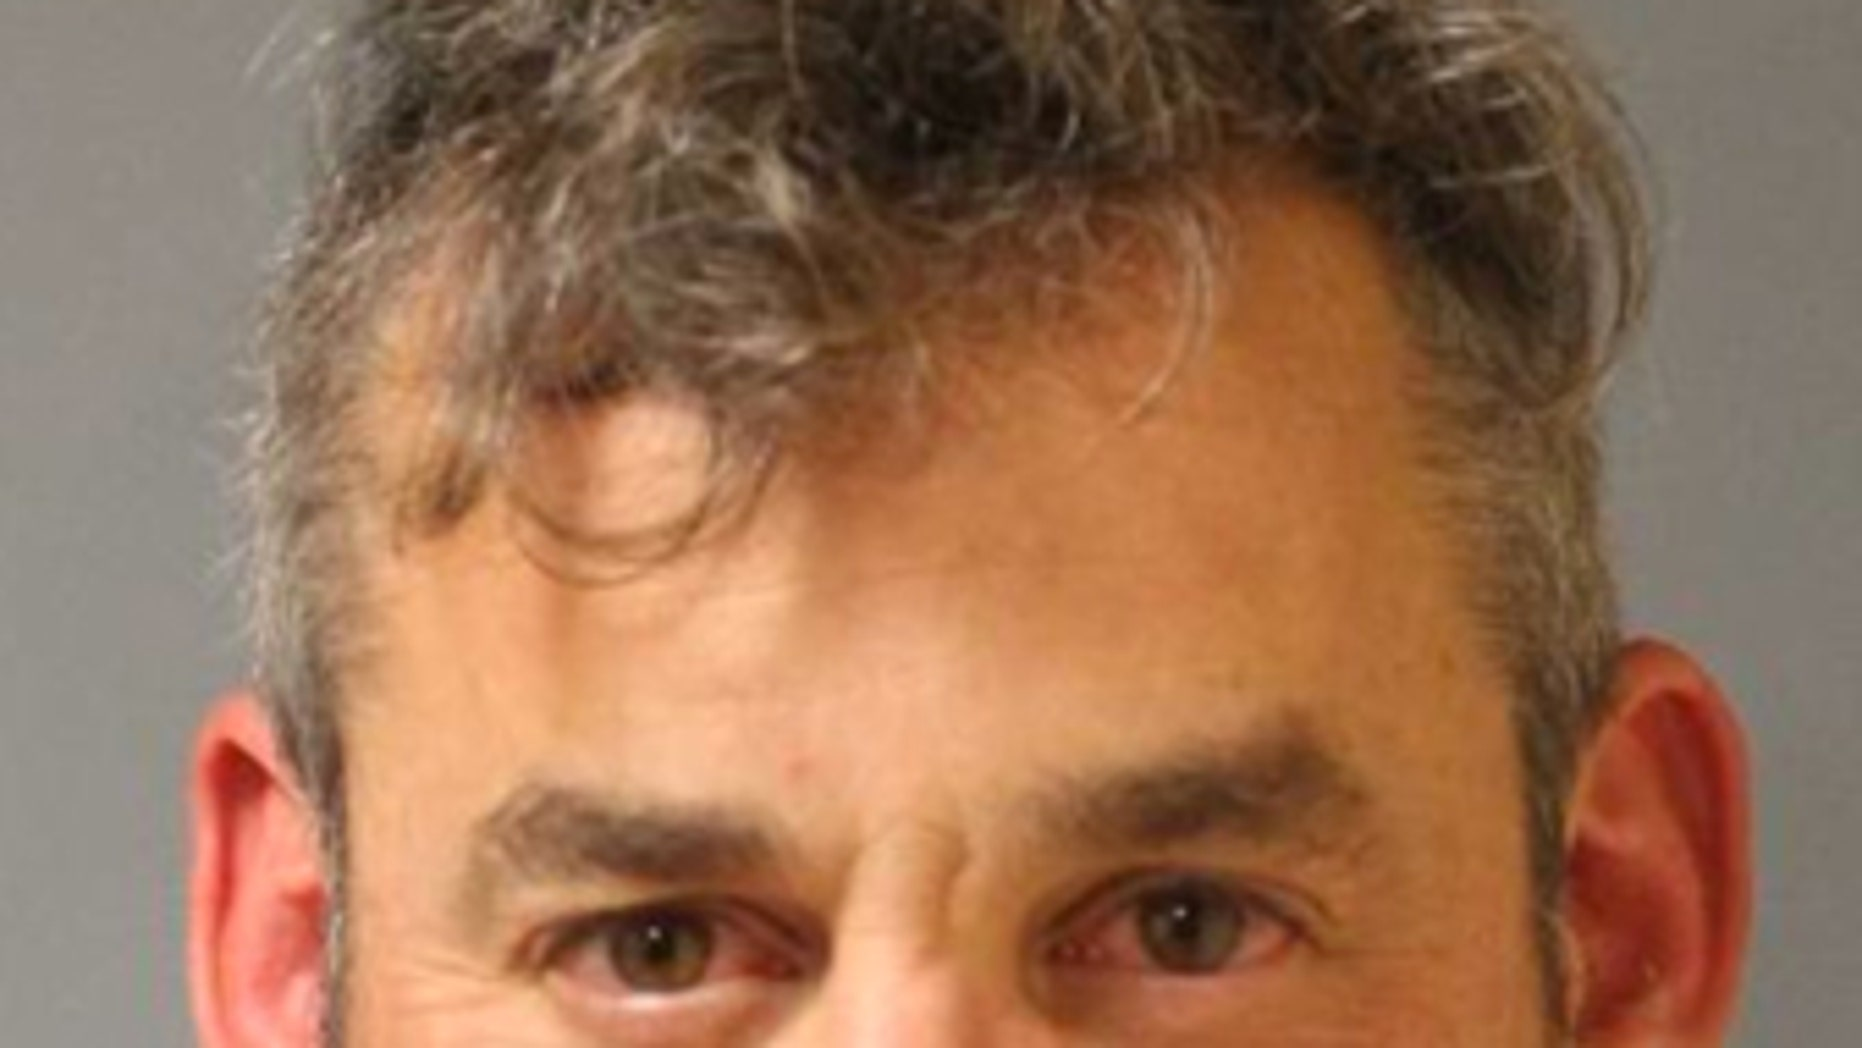 This Sept. 30, 2015, booking photo provided by the Saratoga Springs Police Department shows Nicholas Brendon, who was arrested Wednesday, Sept. 30, after a fight with his girlfriend.